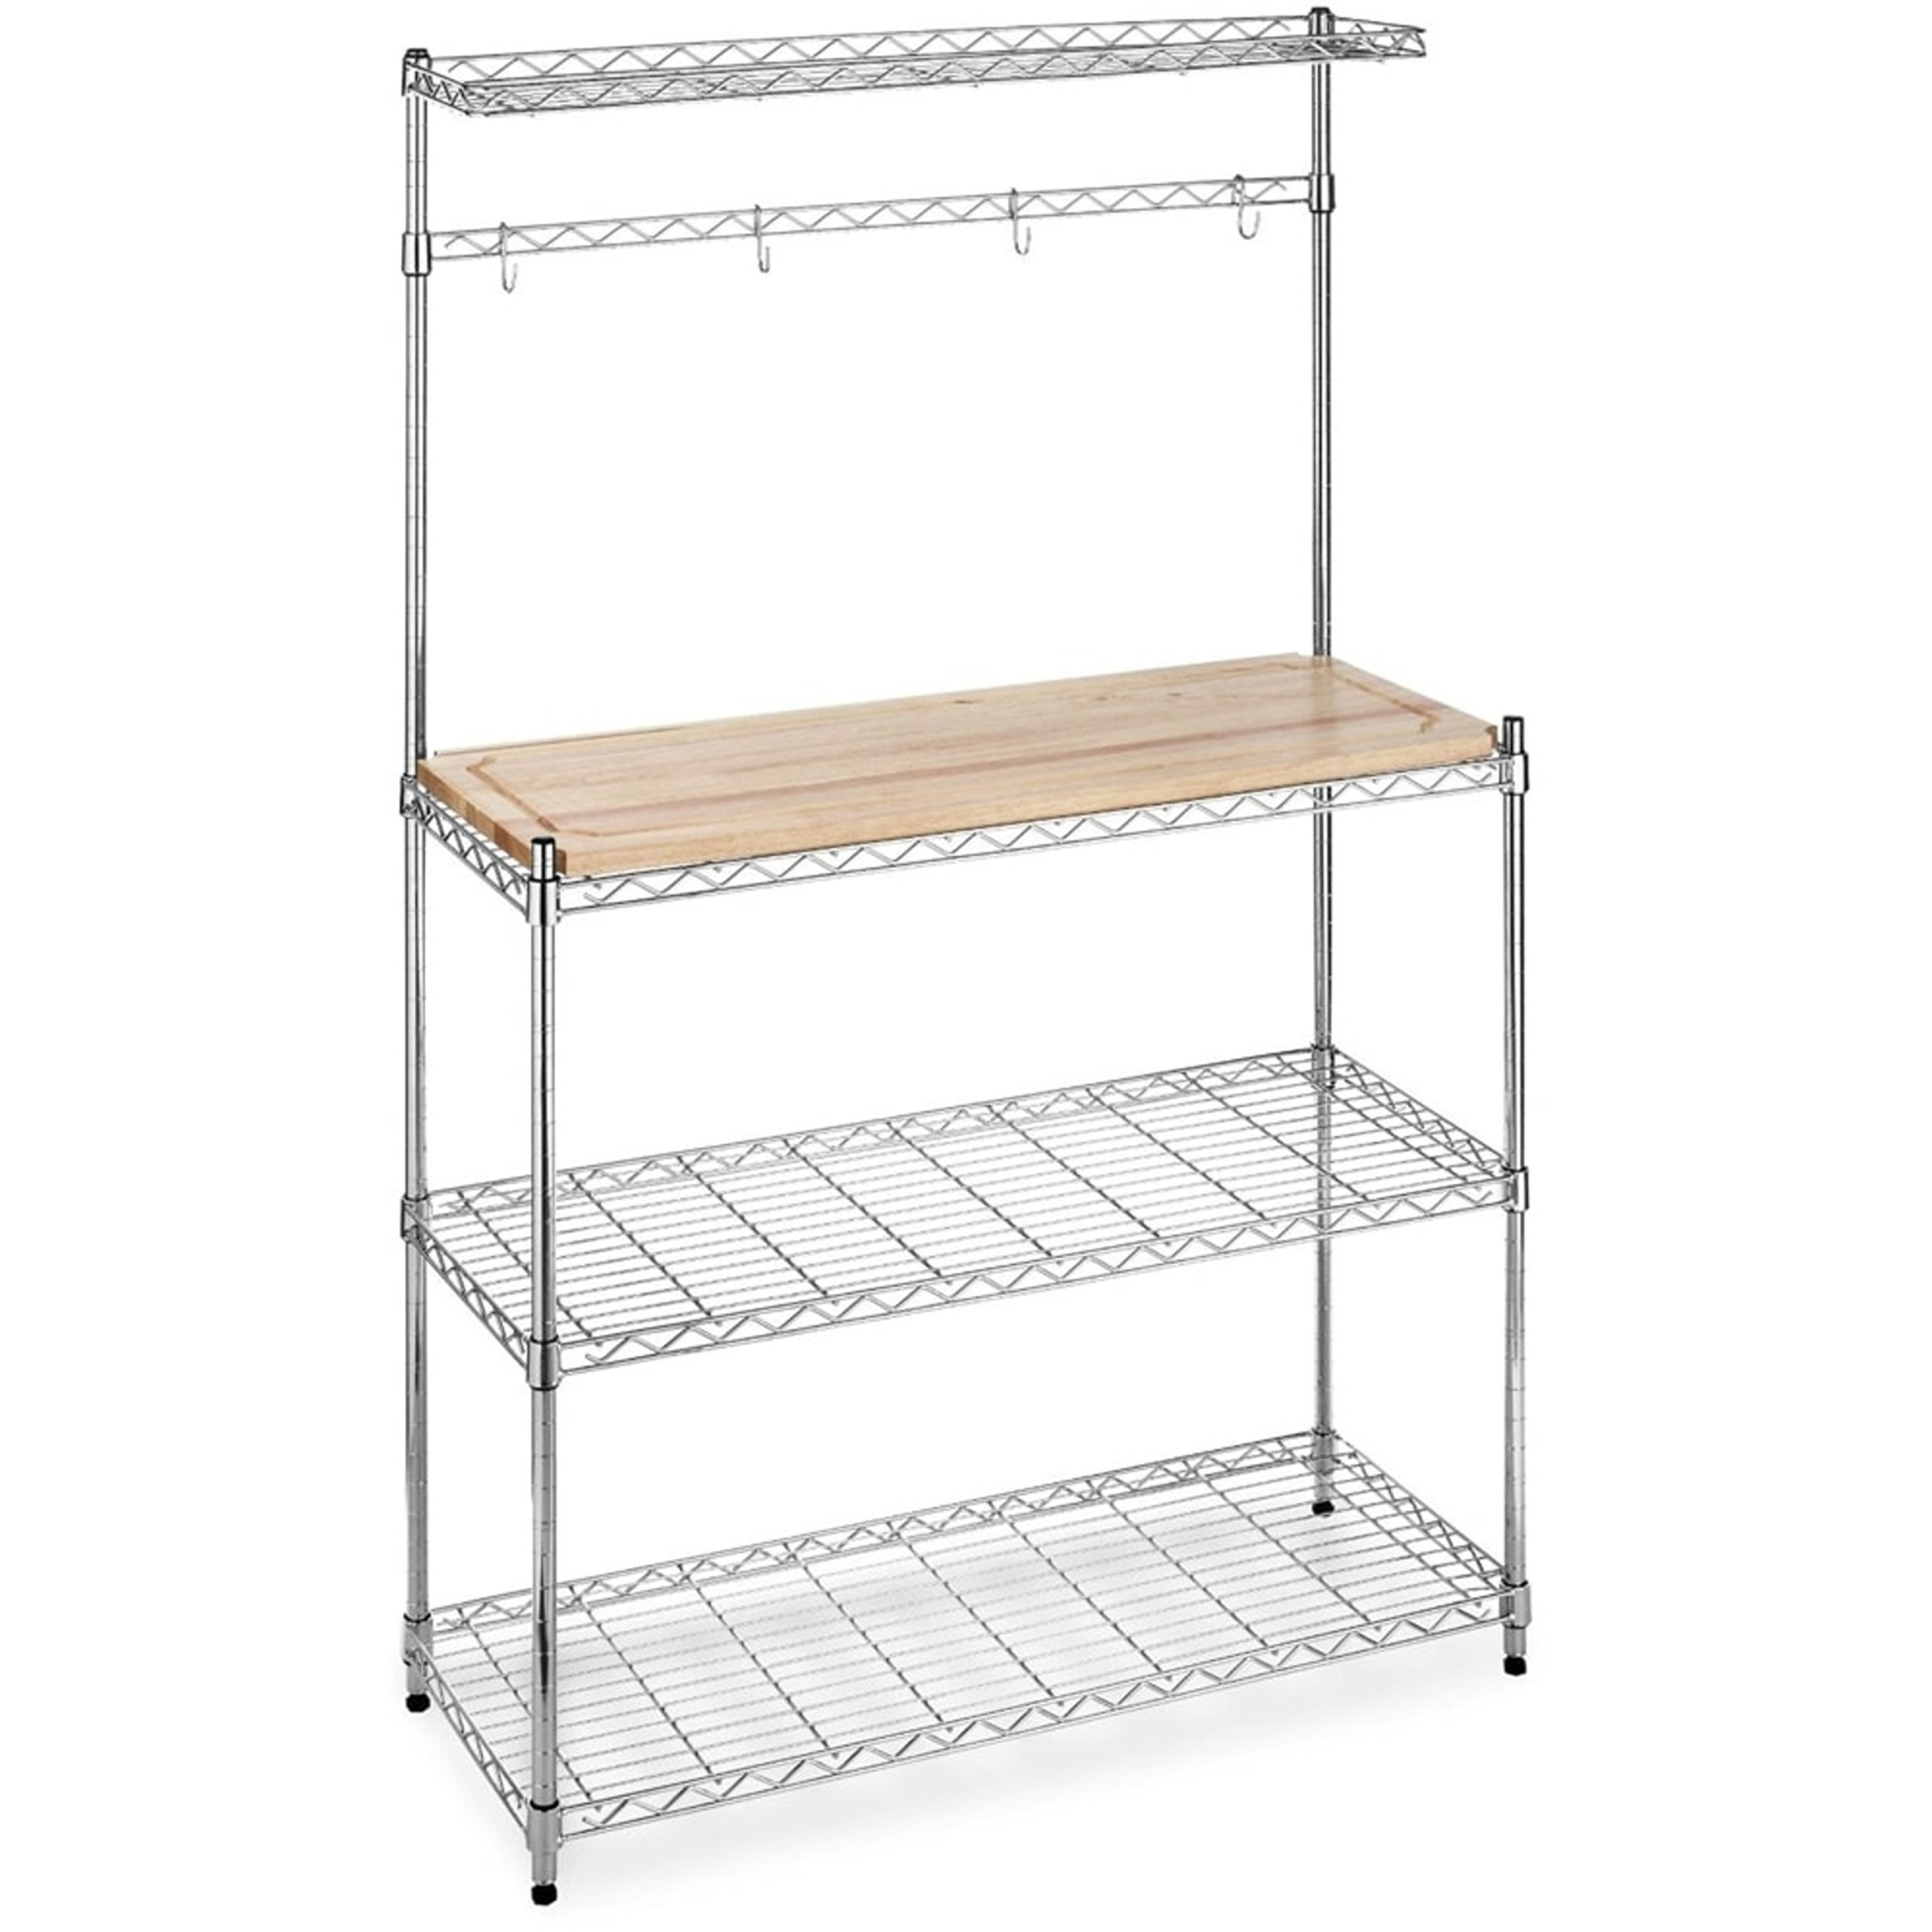 Durable Chrome Steel Construction Microwave Baker's Rack with Removable Top